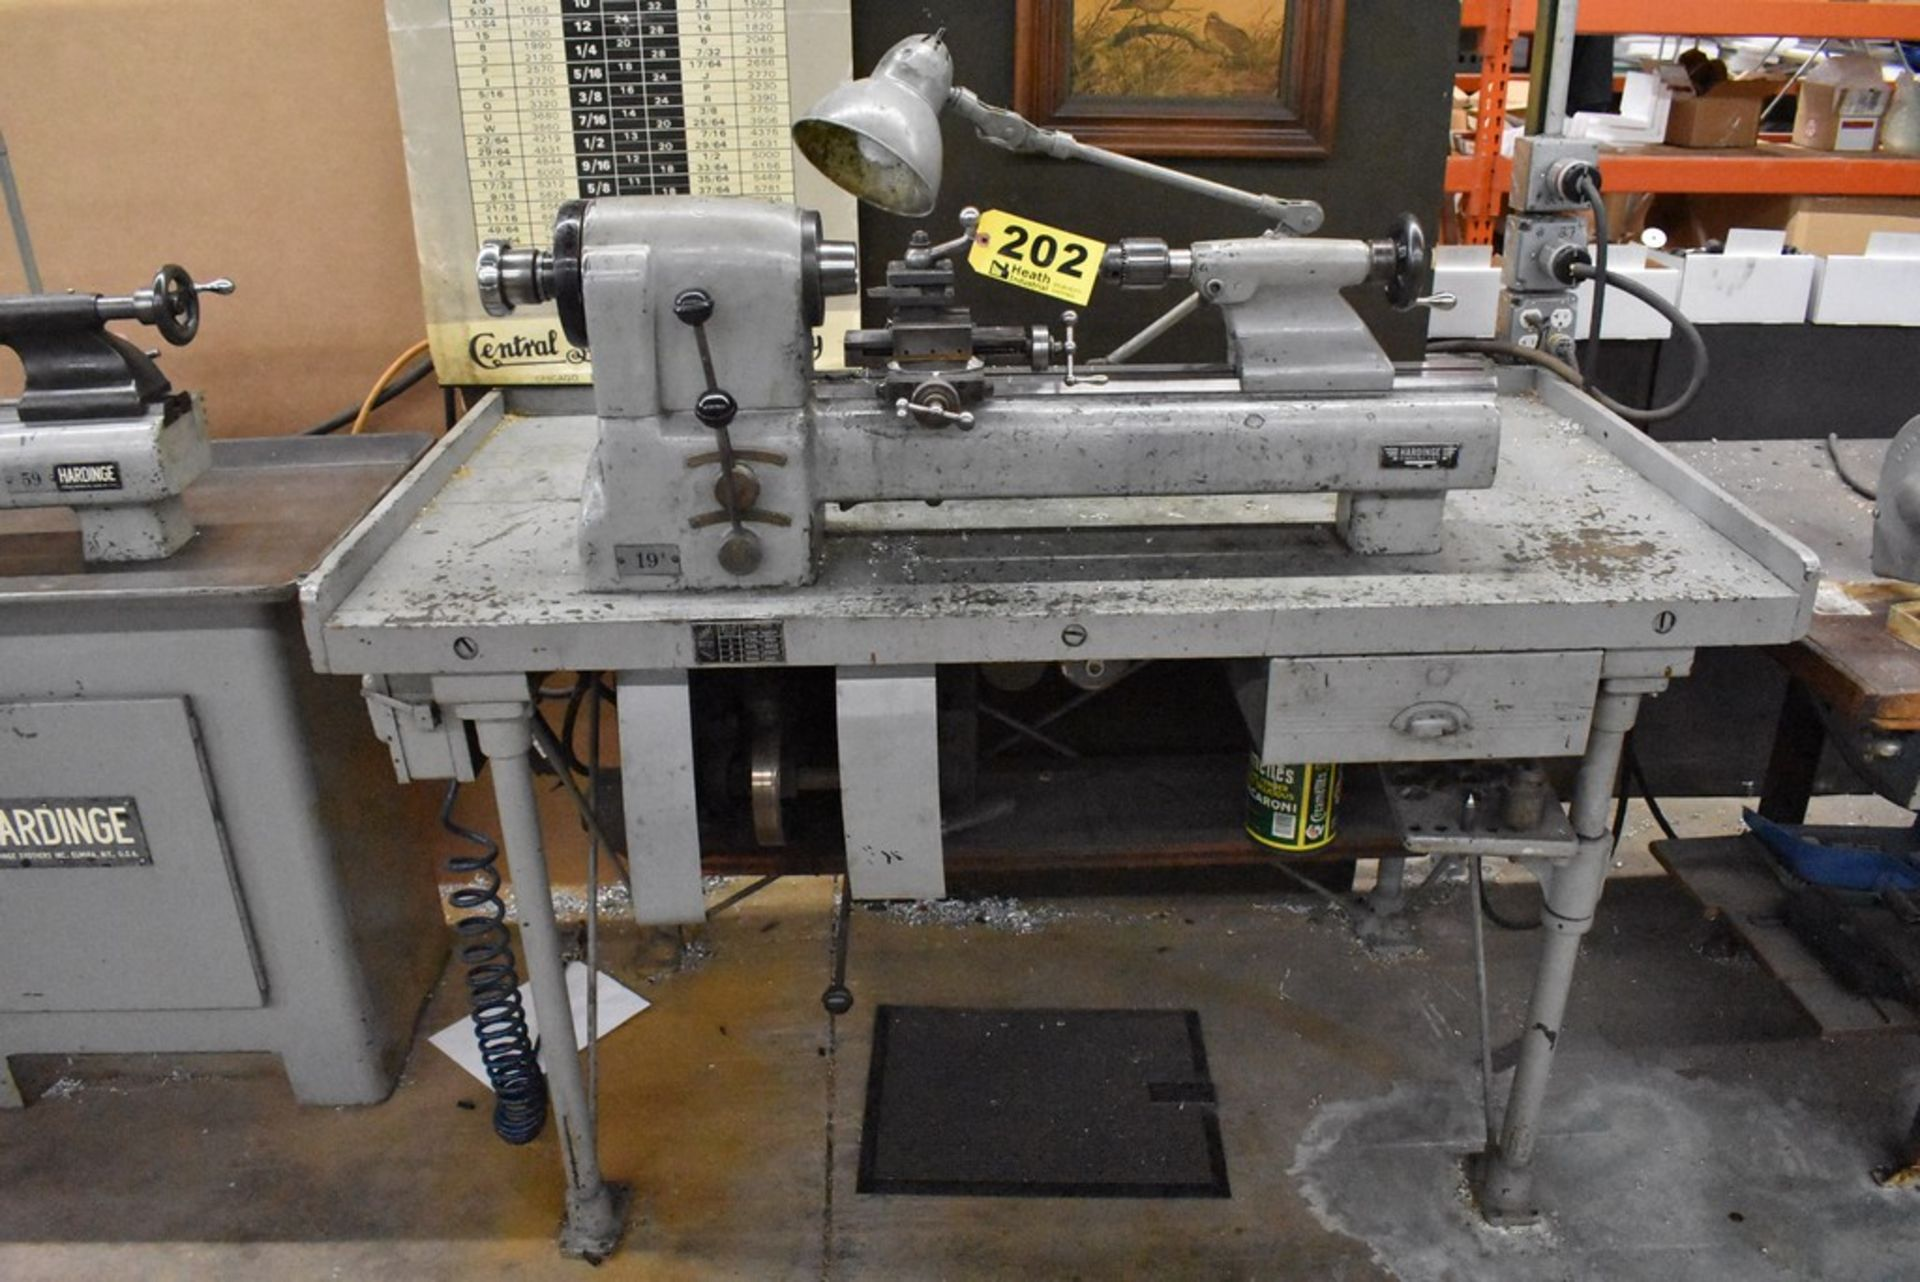 HARDINGE NO. 59 PRECISION SPLIT BED LATHE, S/N 59-16741, WITH SWIVEL COMPOUND, MOUNTED ON TABLE - Image 4 of 7